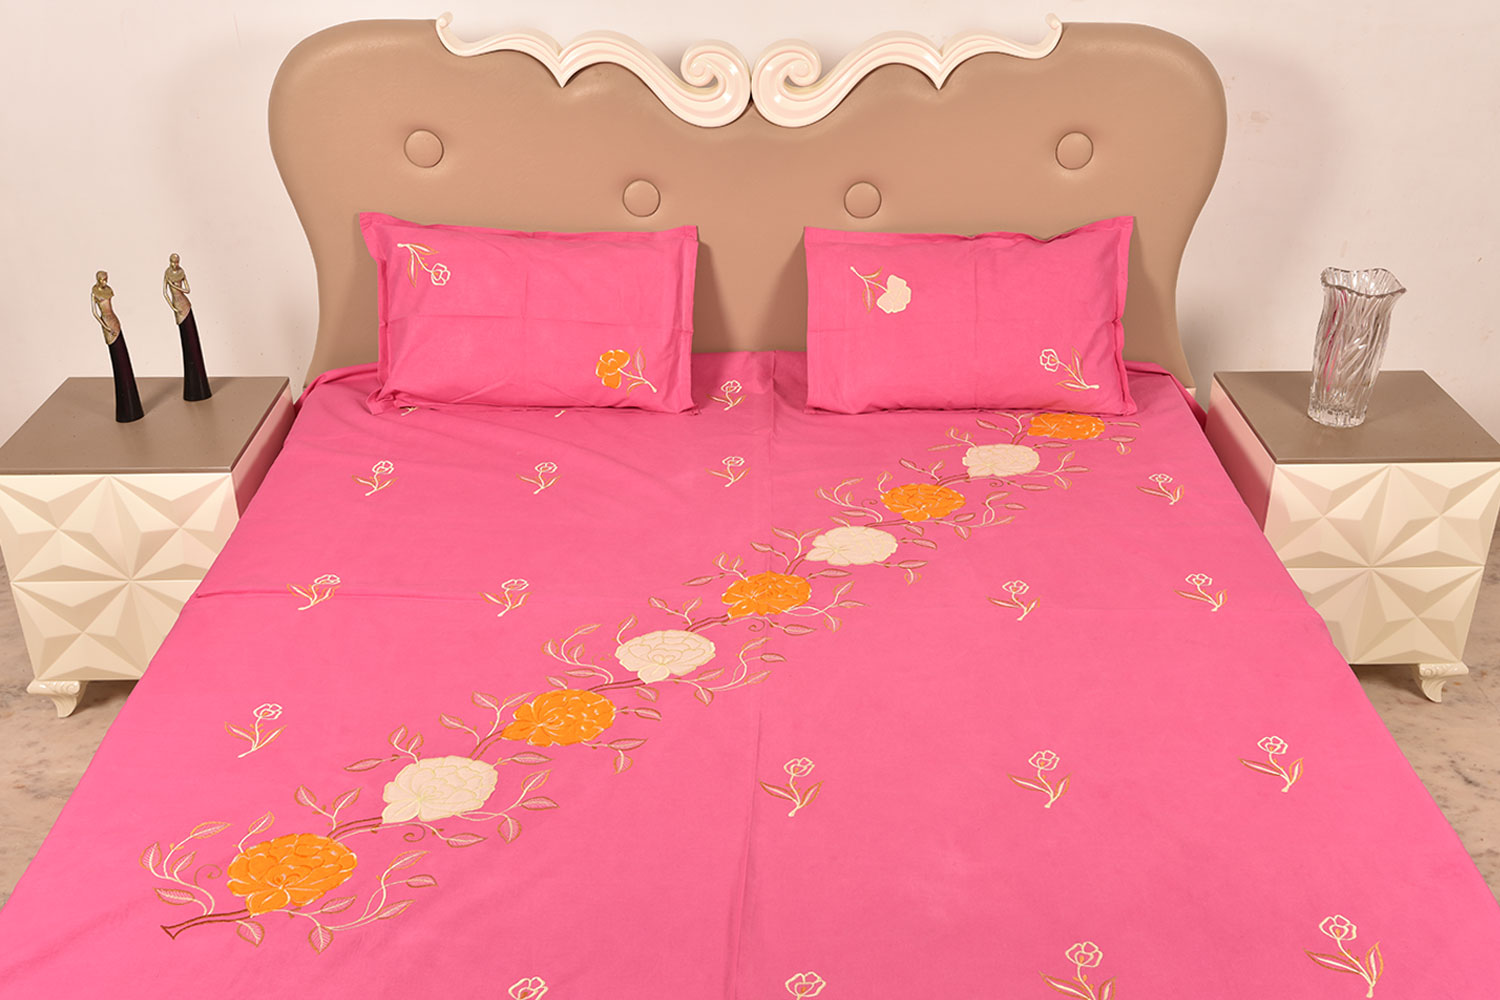 Handmade bed sheets design - Pink Handmade Bed Sheet Linen With Yellow White Floral Design Beautiful Decorative Stylish